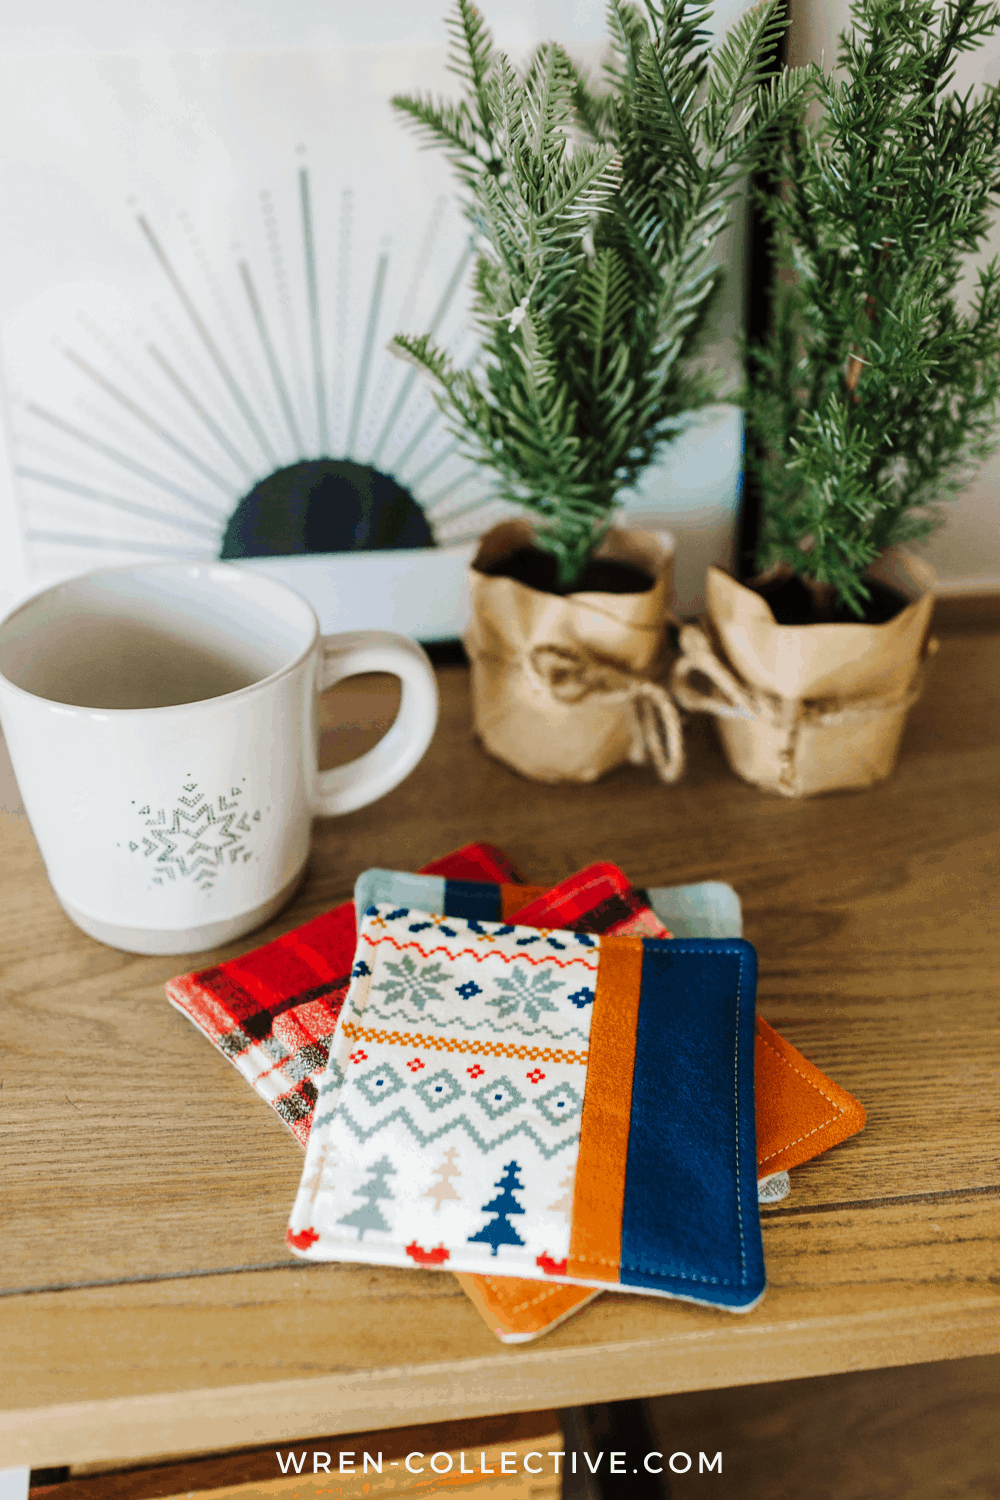 Four fabric scrap project coasters sitting on a shelf in front of a ceramic mug. This free tutorial is from Rachel of Wren Collective.